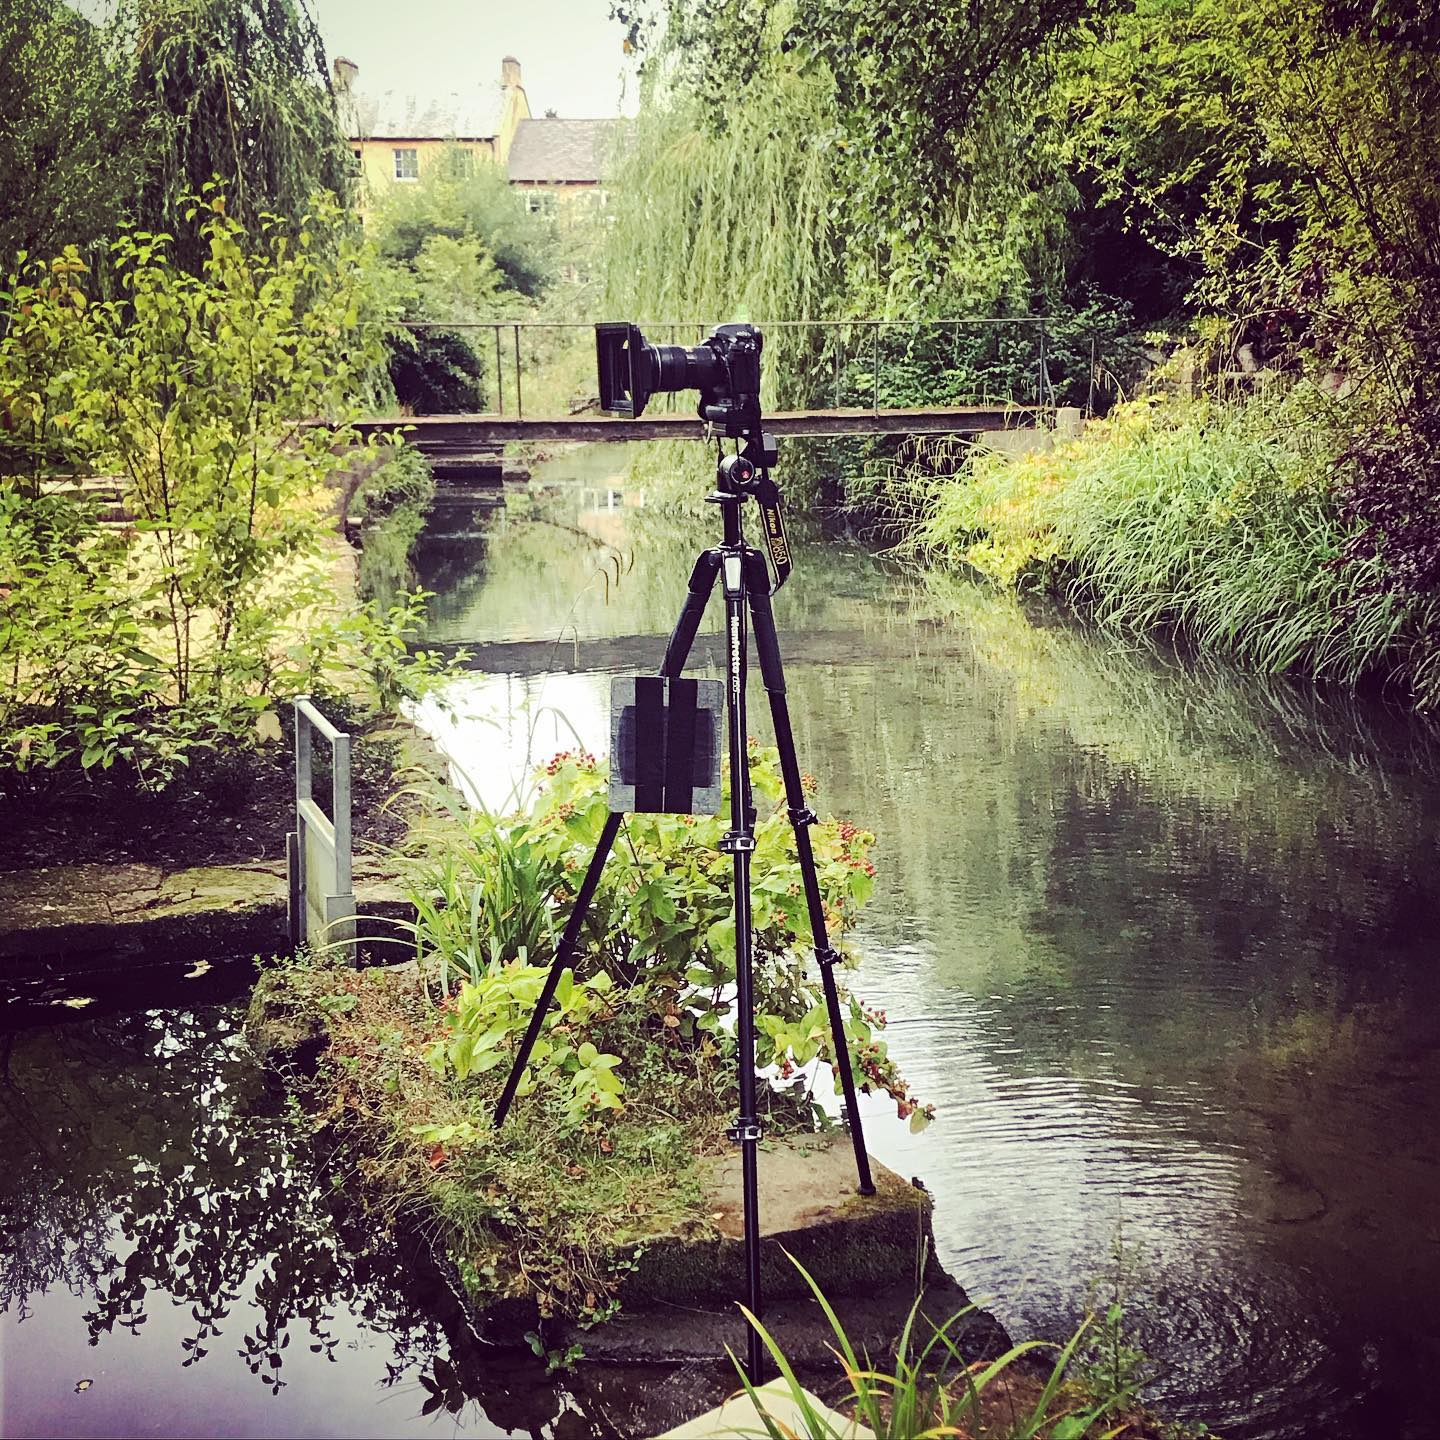 Today's precarious set up ...#garden #gardenphotography #gardenphotographer #nikond850 #precarioussetup #precarioustripod #locationphotography #locationphotographer #behindthescenes #nikonphotography #nikon #nikonphoto